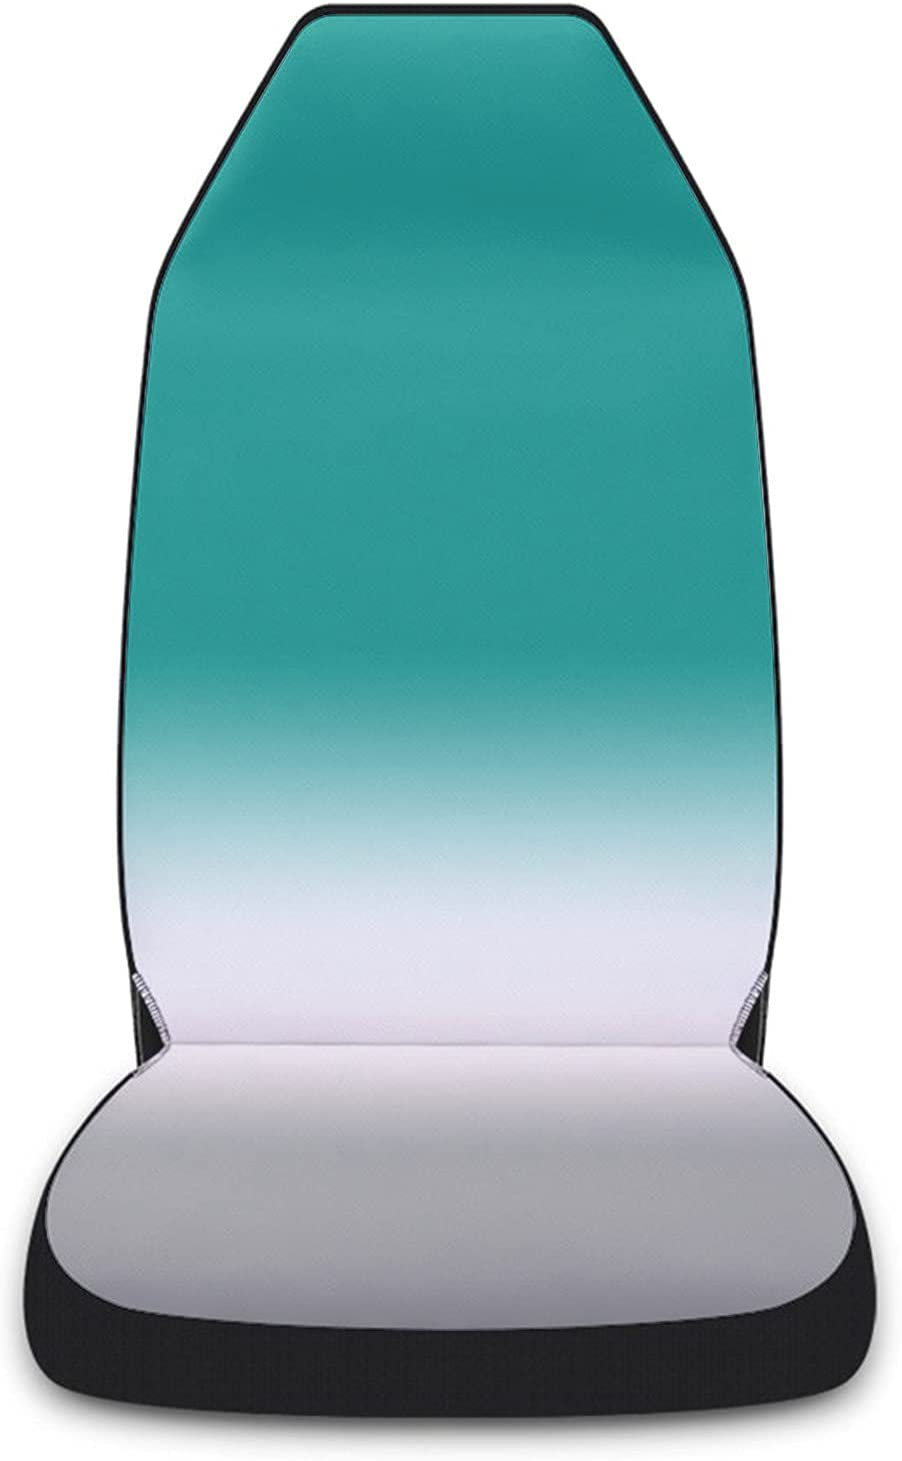 Car Seat Covers Ombre Turquoise Grey White Front Cover Prot 2021new shipping free shipping Challenge the lowest price